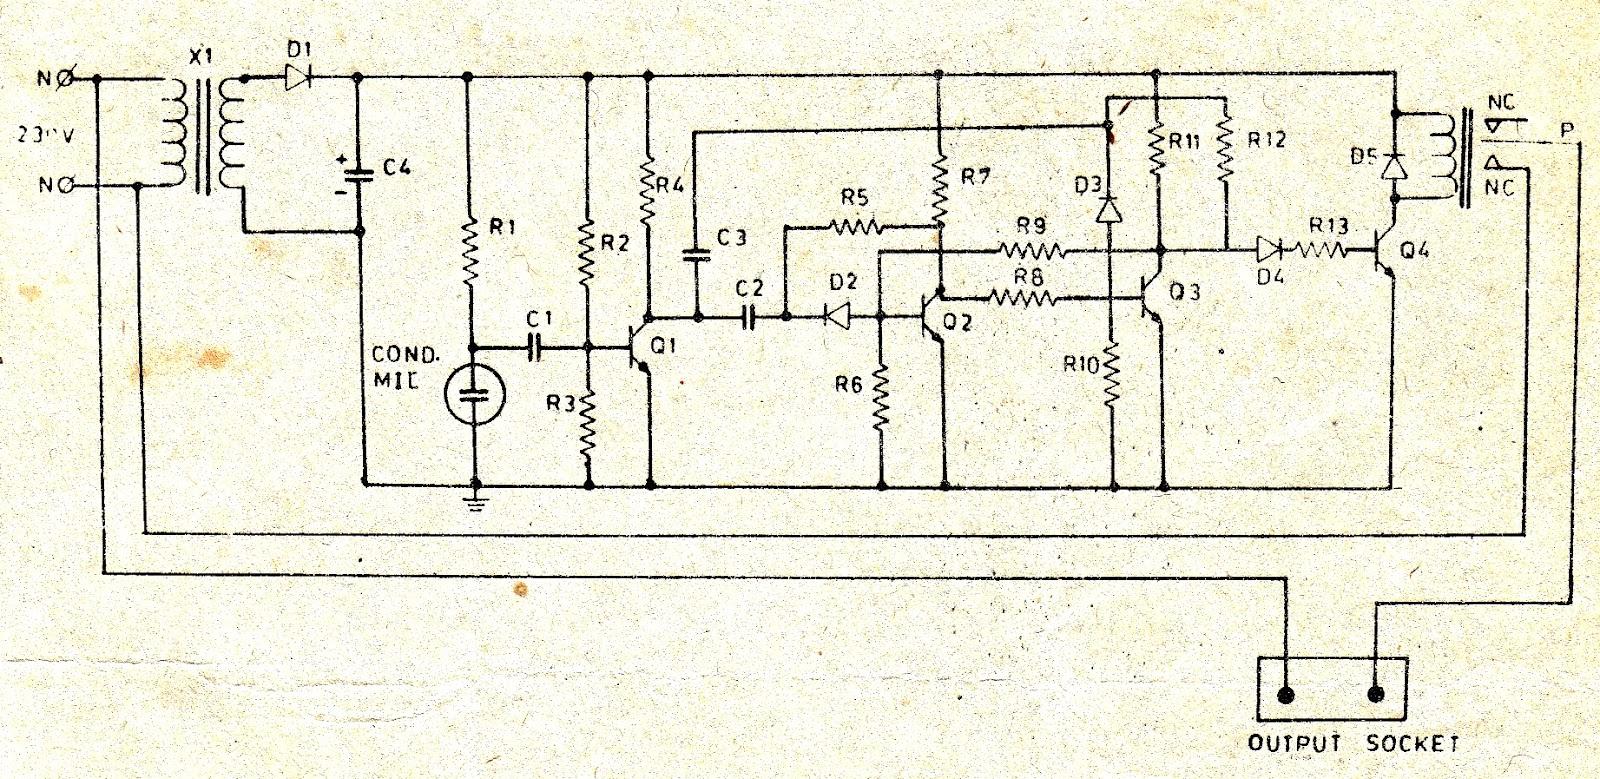 Simple transistor switching example should show LED off ...